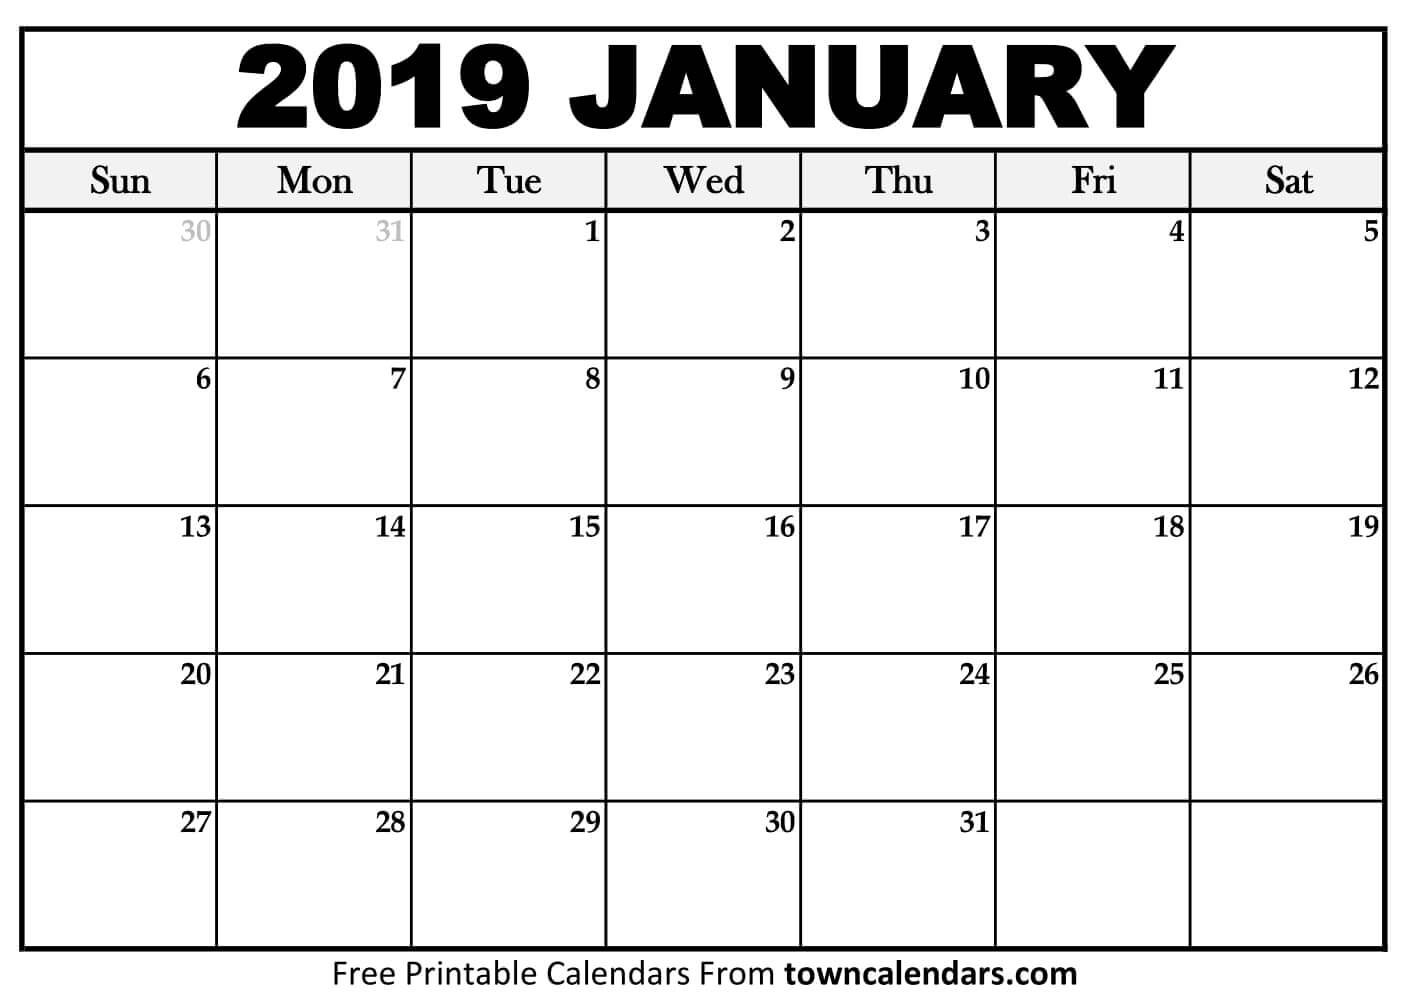 Printable January 2019 Calendar – Towncalendars Calendar 2019 Jan